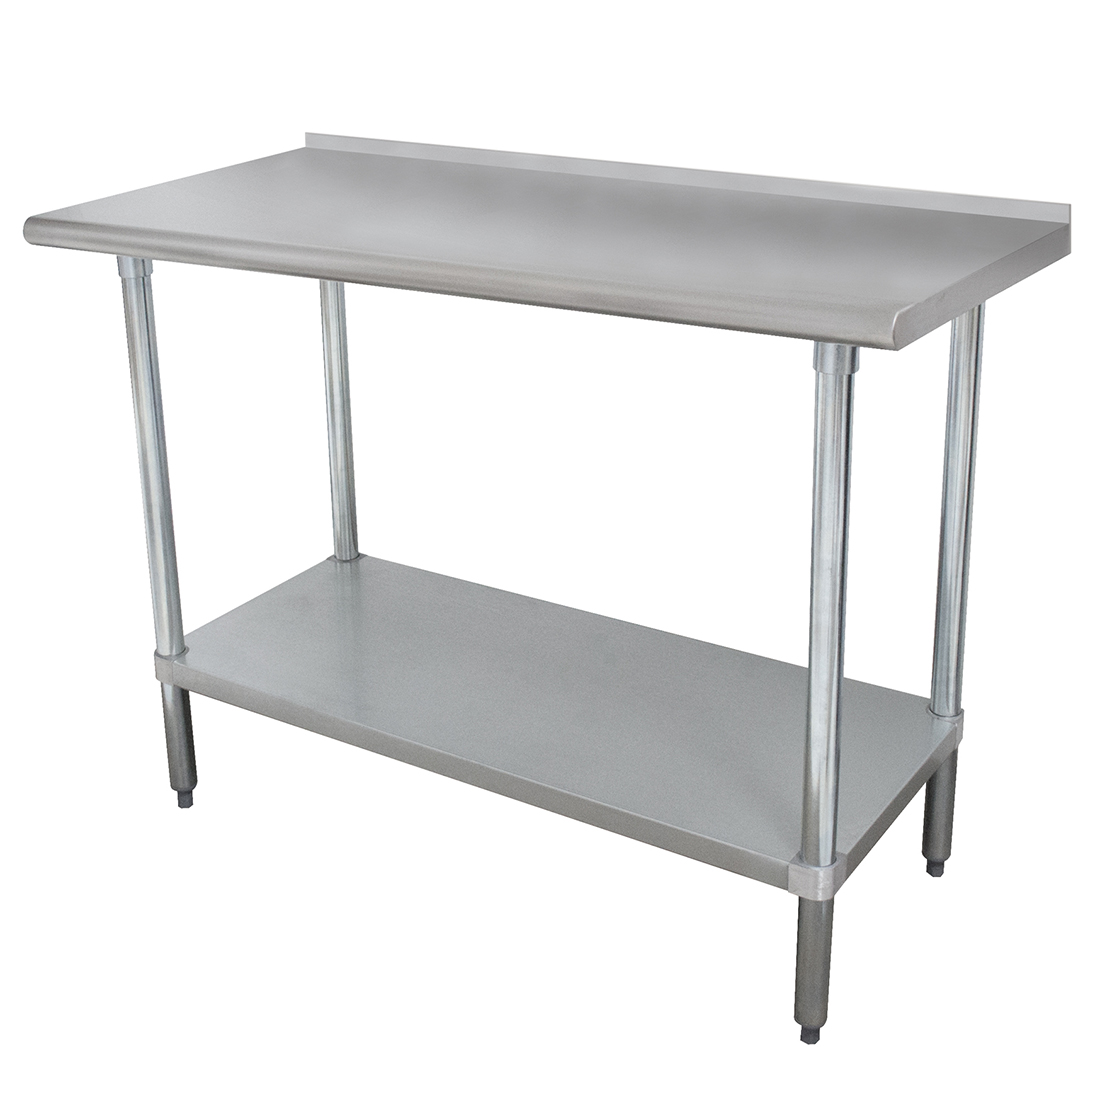 Advance Tabco FMG-307 work table,  73